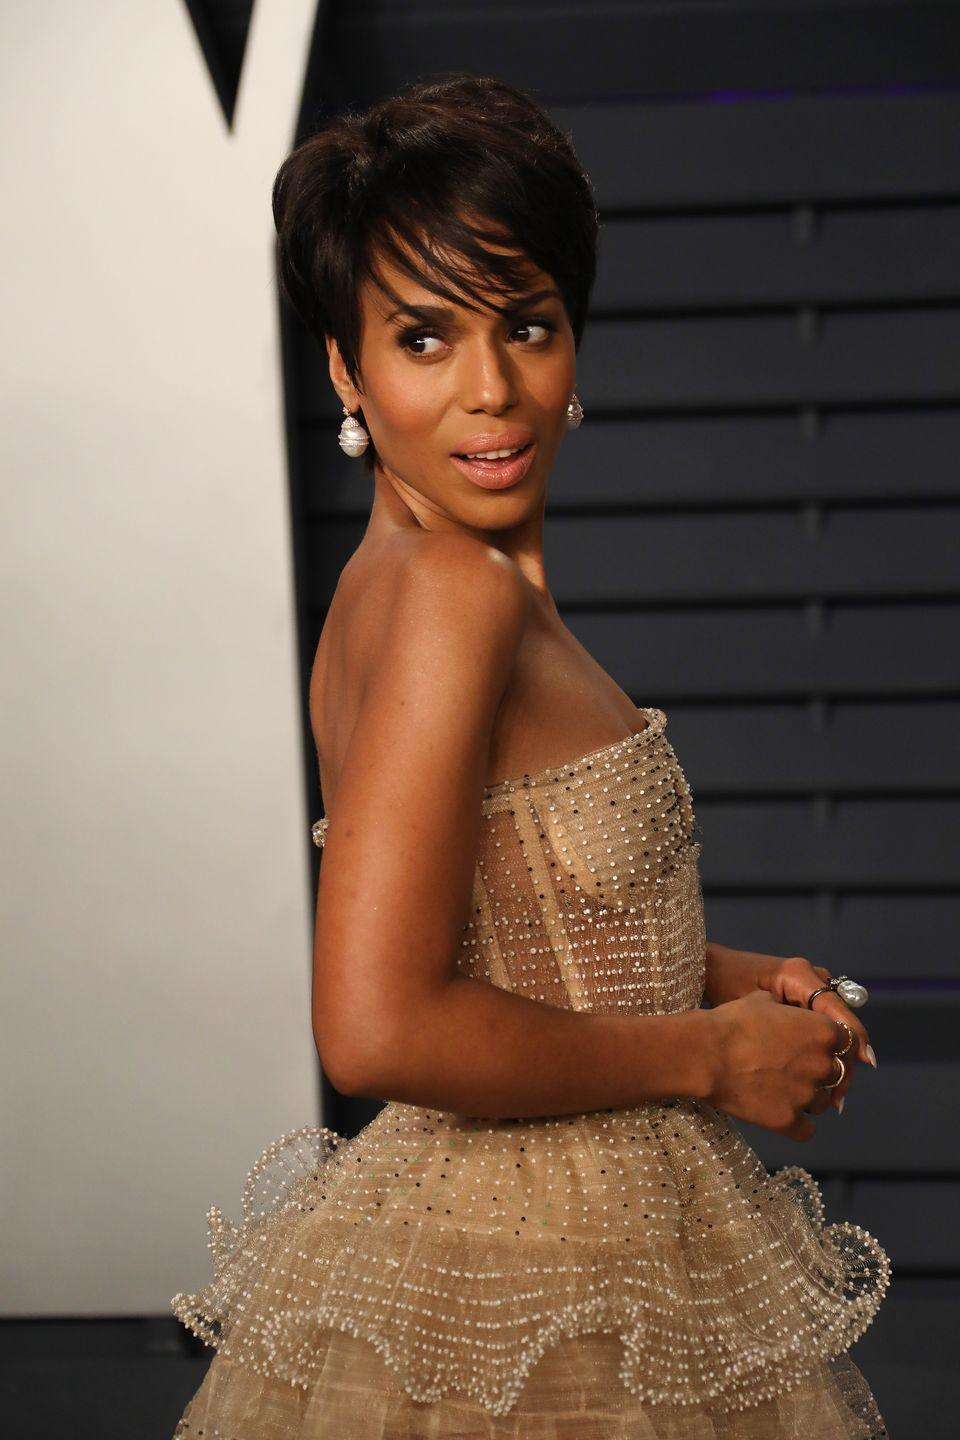 <p>Kerry Washington walked the red carpet at the 2019 Vanity Fair Oscars party wearing a gorgeous side-swept pixie cut with face-framing layers. </p>